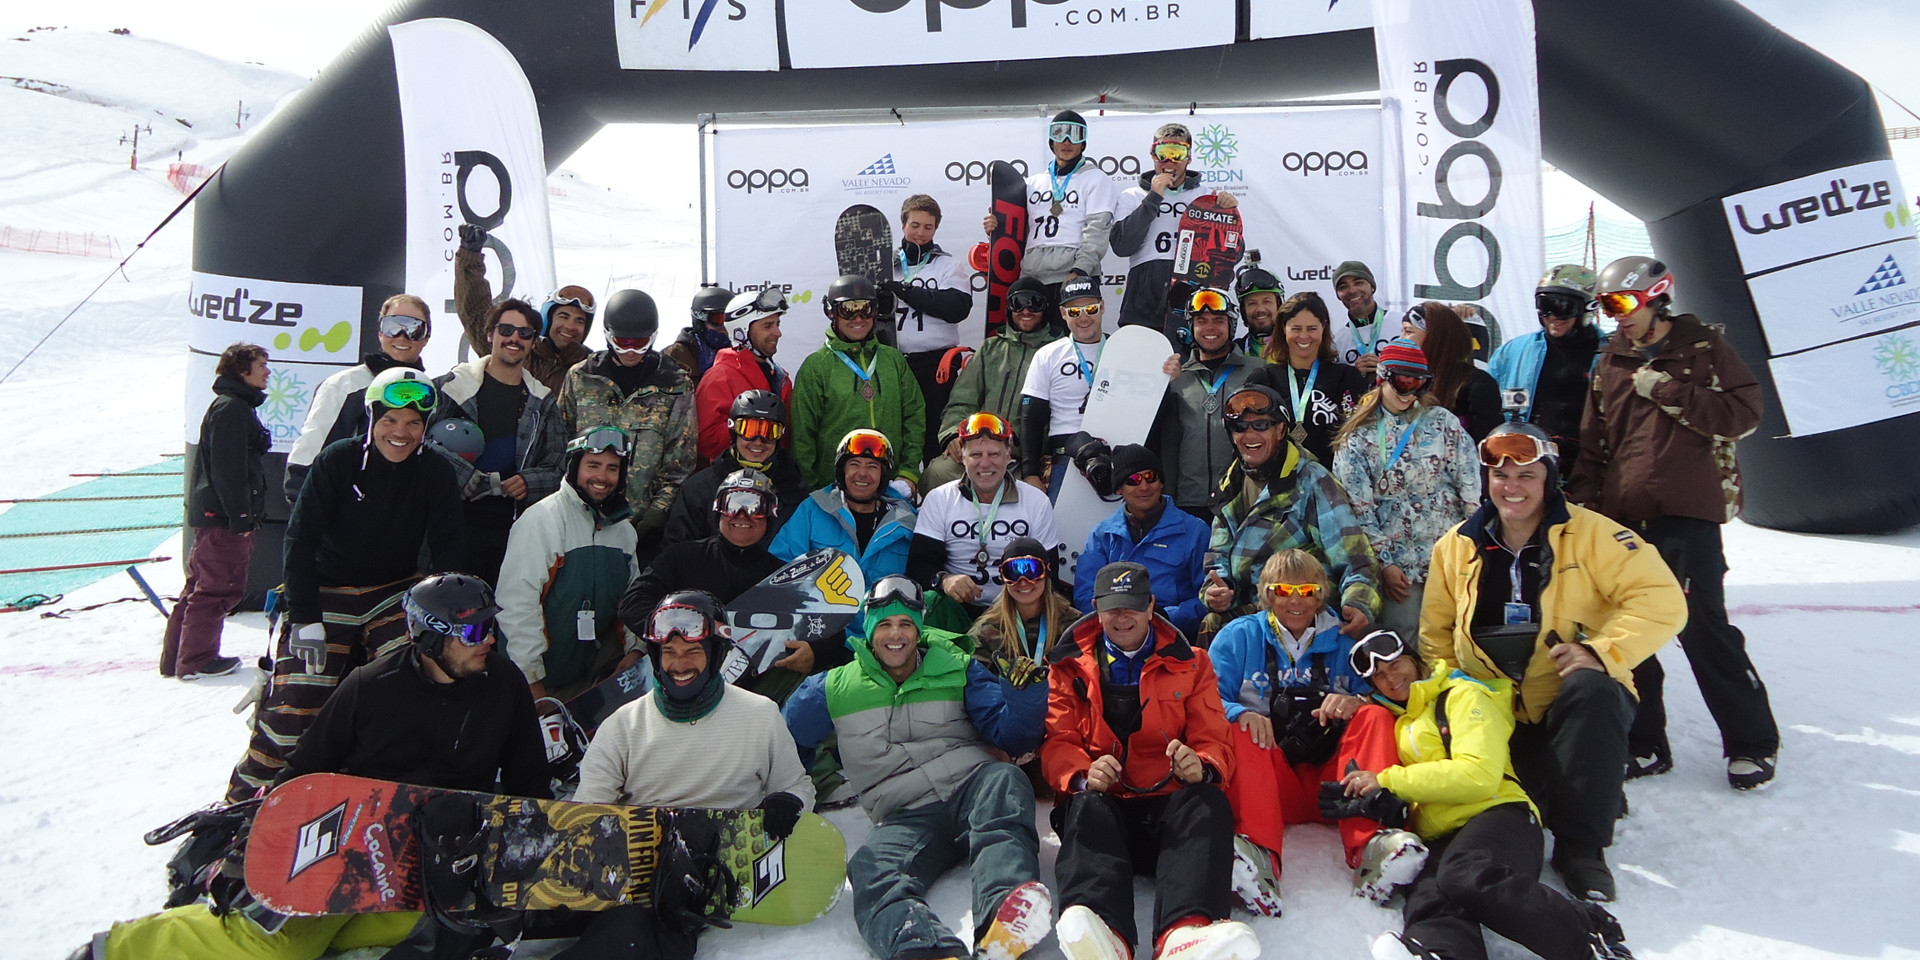 Working for the Snowboard South American Continental Cups and Brazilian National Championship Organizing Committee